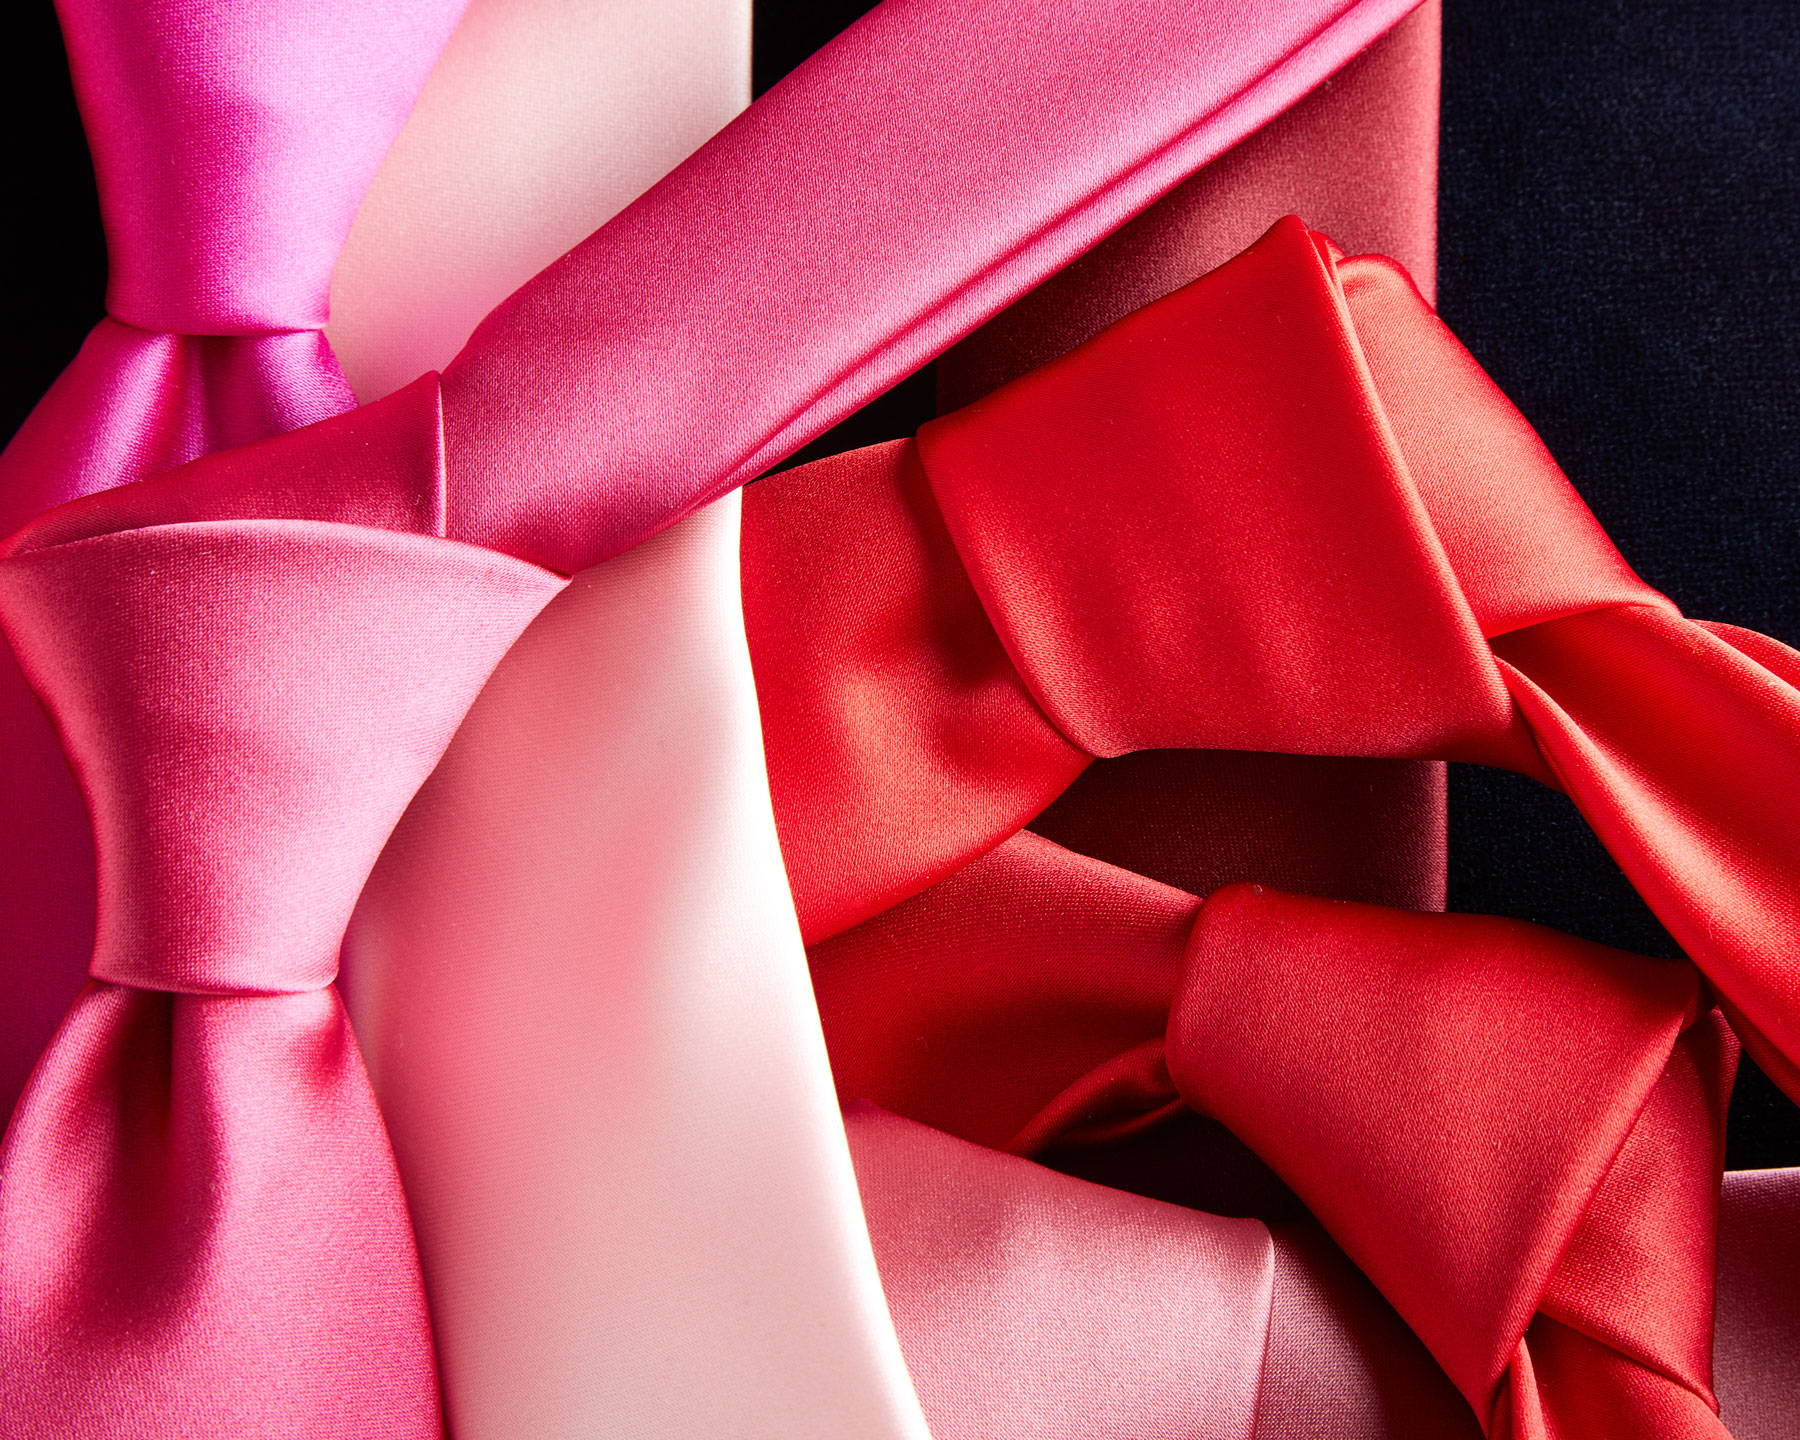 Pink and red ties laid flat